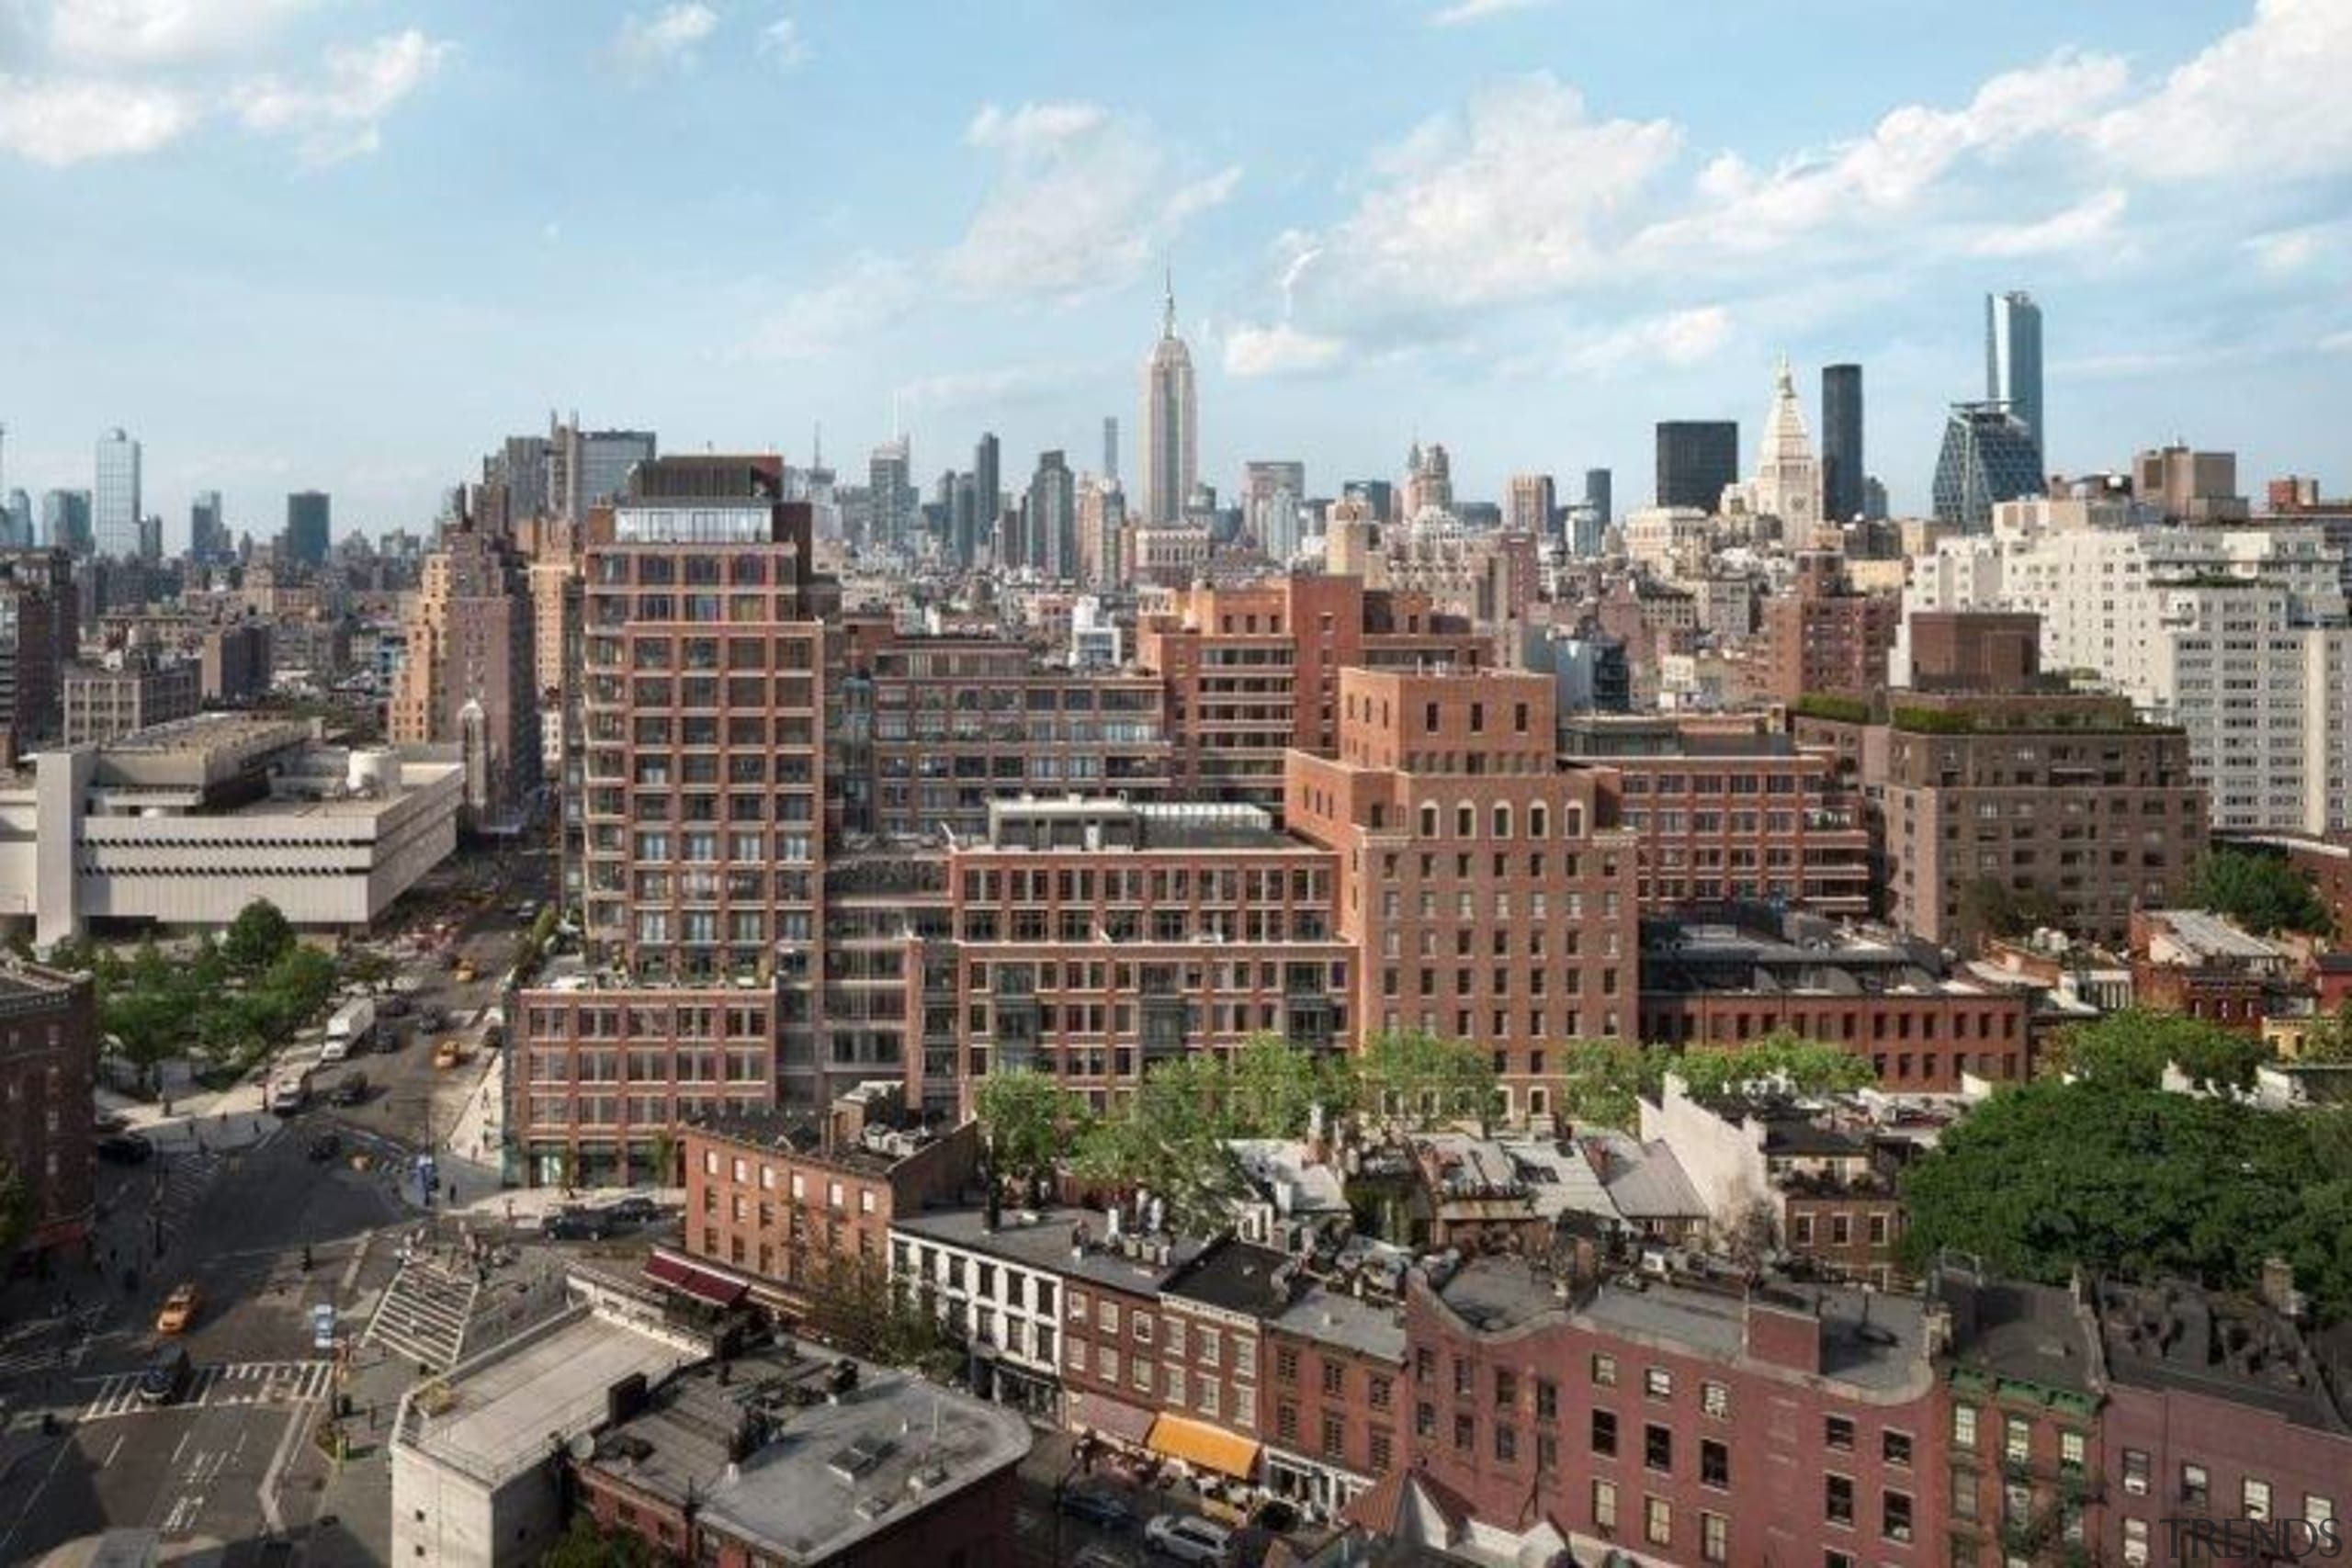 Jon Bon Jovi's new apartment in NYC – aerial photography, bird's eye view, building, city, cityscape, daytime, downtown, metropolis, metropolitan area, neighbourhood, residential area, sky, skyline, skyscraper, suburb, tower block, urban area, white, gray